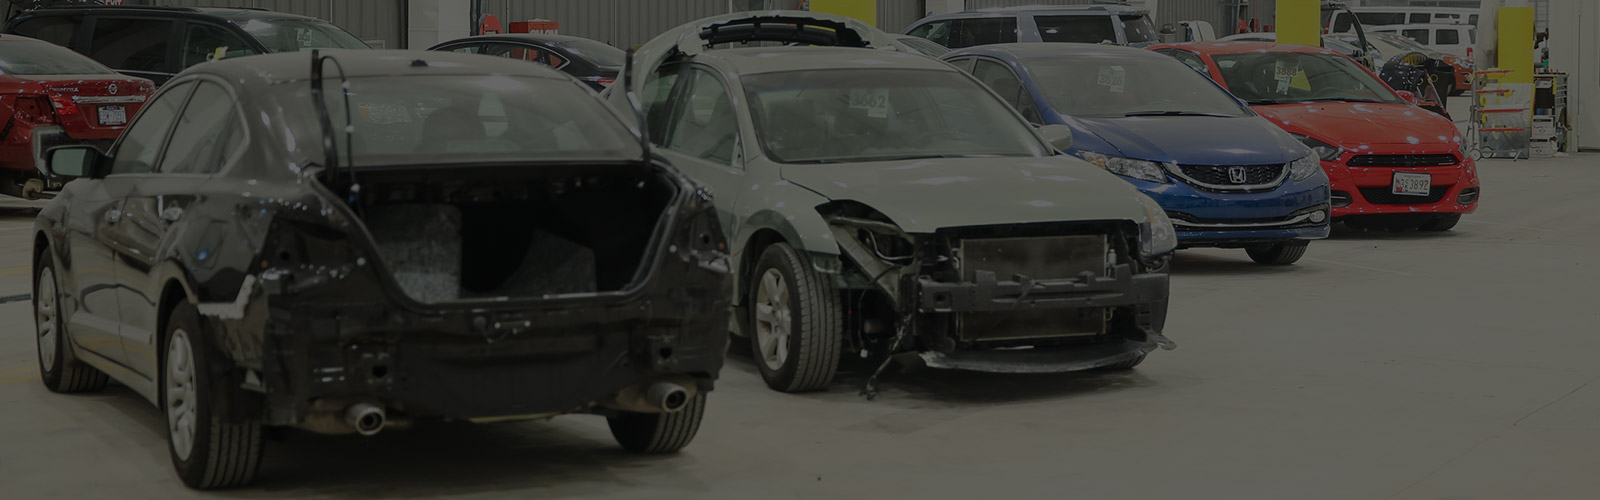 collision repairs for all makes and models